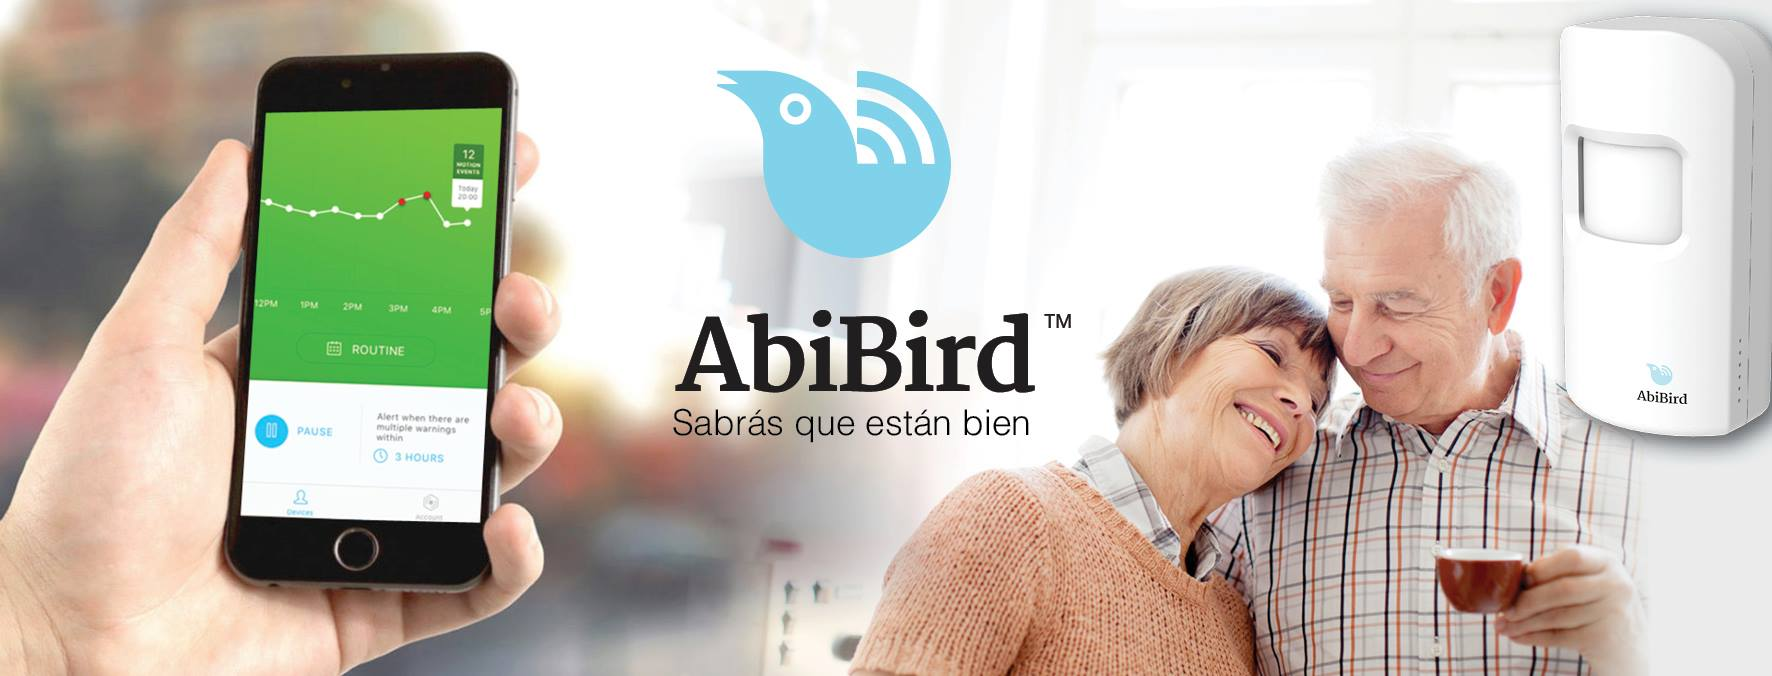 abibird-iberian-Press